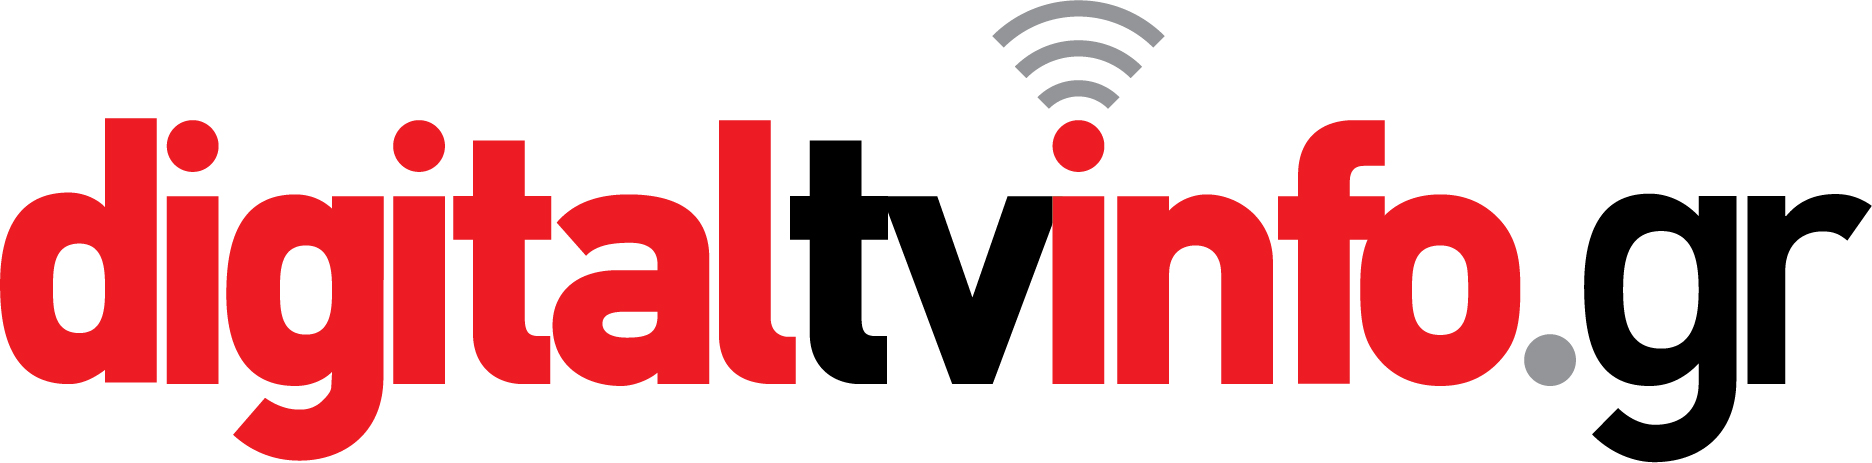 Digital_tv_info_logo